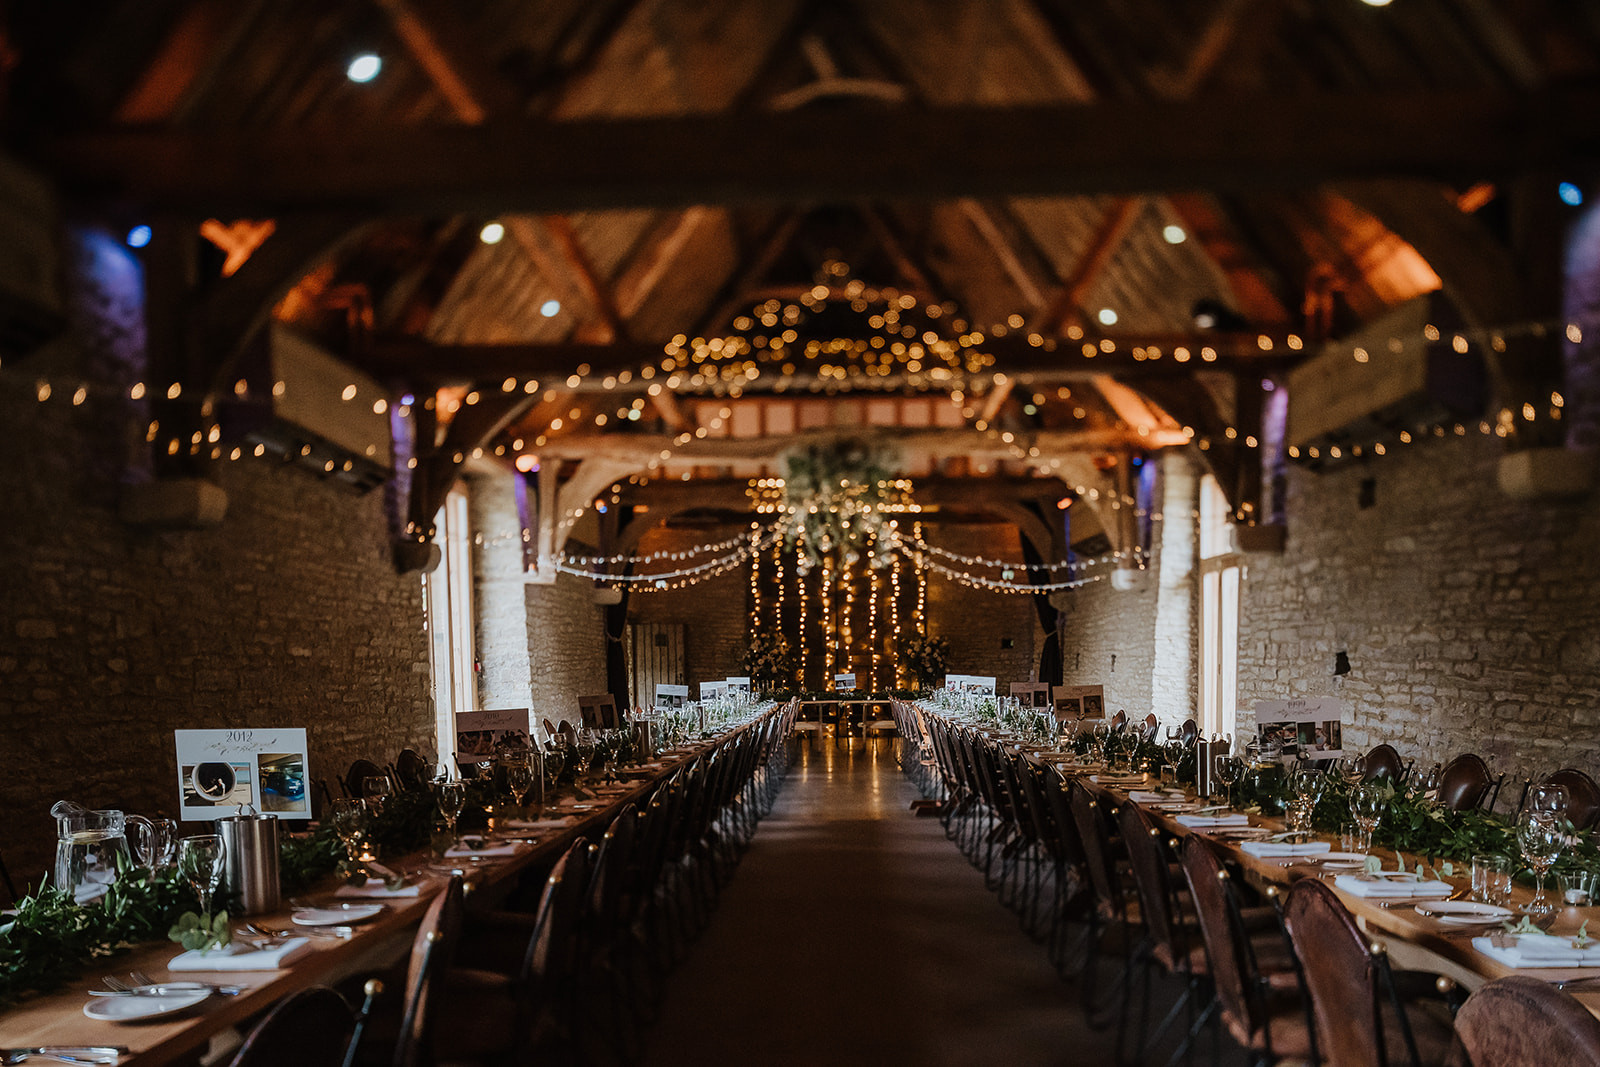 Flexible, chilled, relaxed and super-efficient is the vibe at The Tythe Barn, Launton – no wonder they win so many awards! Pre-registration by email essential so sign up and ensure you don't miss out. And just when you think life pre-wedding can't get any better they throw this offer out there -  email info@thetythebarn.co.uk to confirm your attendance and you will be put on their VIP List which, once you've registered on the day, gains you entry into their prize draw to win The Tythe Barn's Luxury Bridal Hamper.  Now knowing The Tythe Barn, Launton ...that is going to be something ridiculously special!